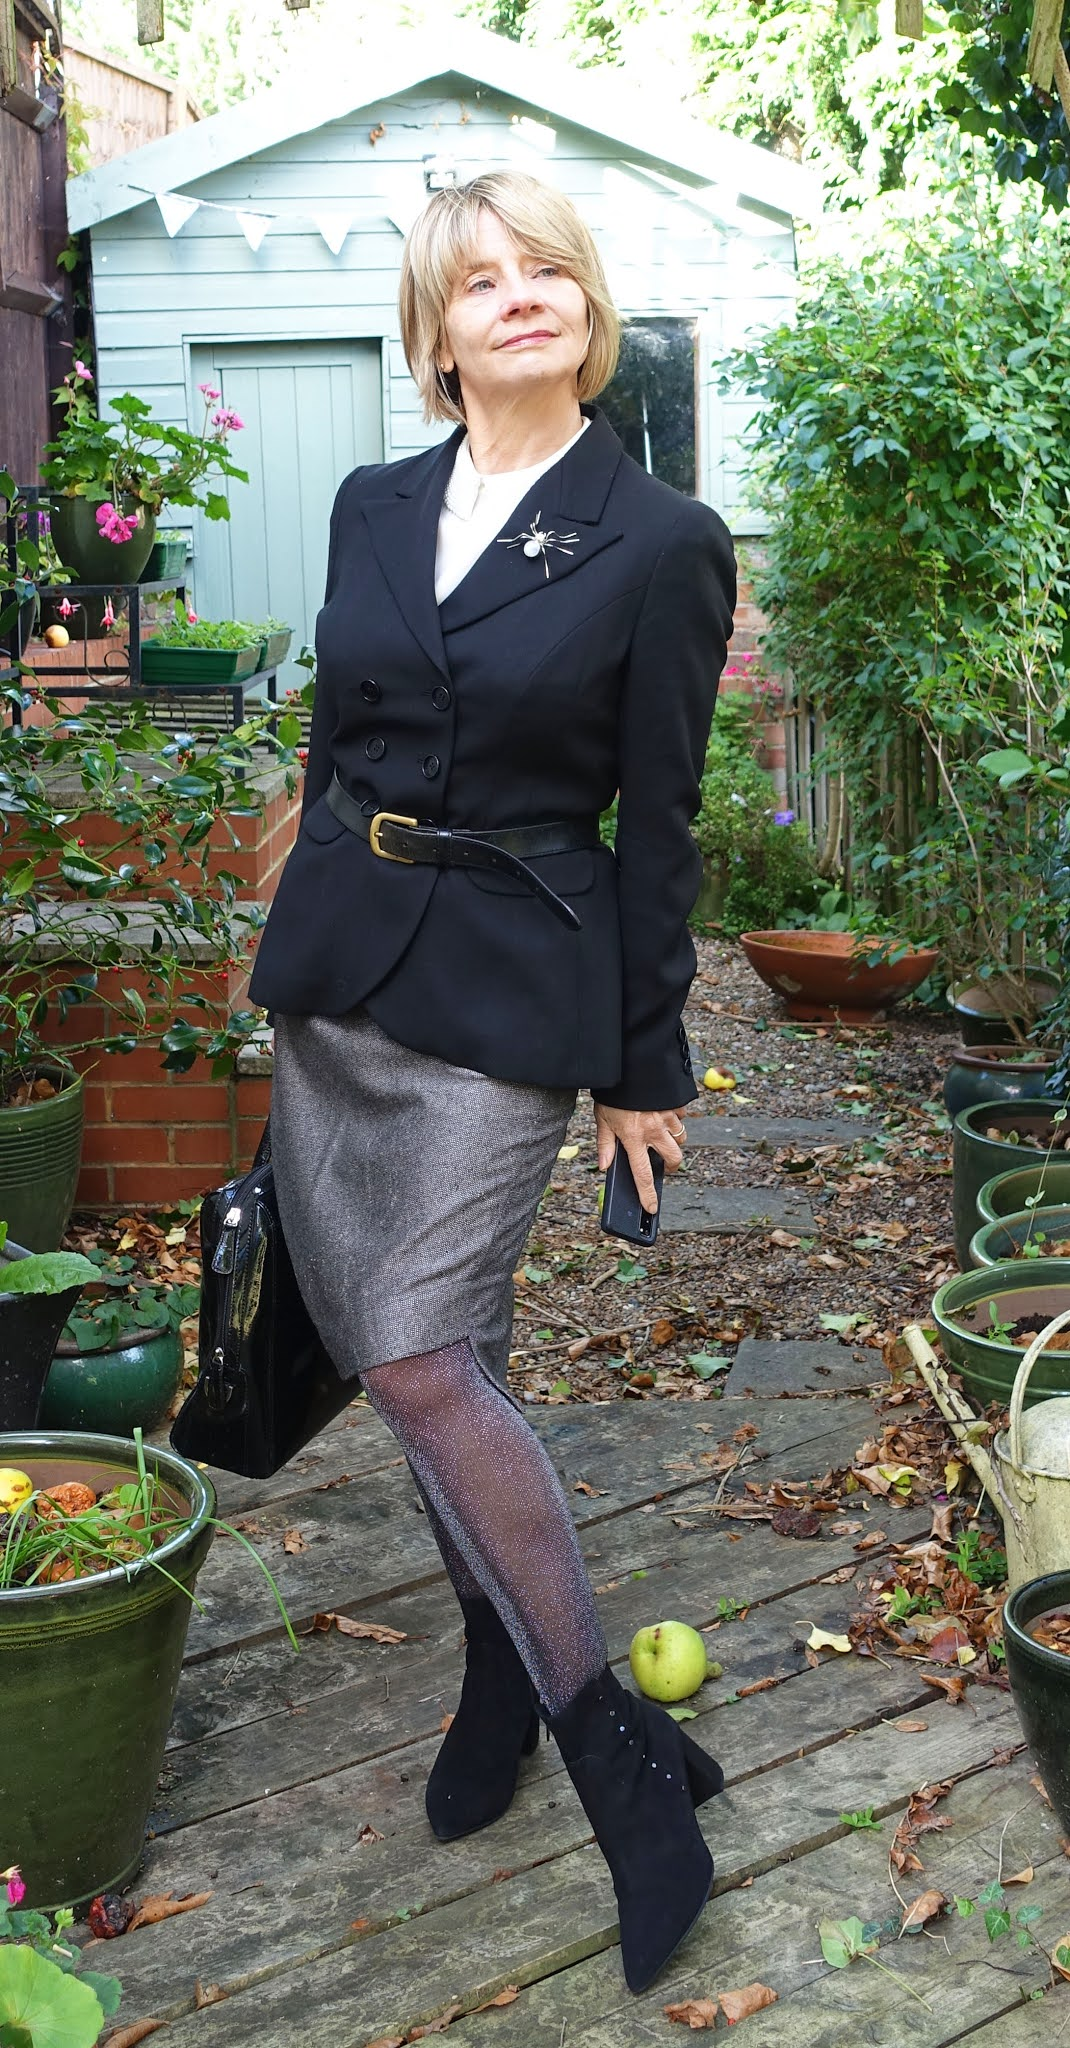 Sparkly tights add some personality to a tailored office chic outfit worn by Is This Mutton's Gail Hanlon